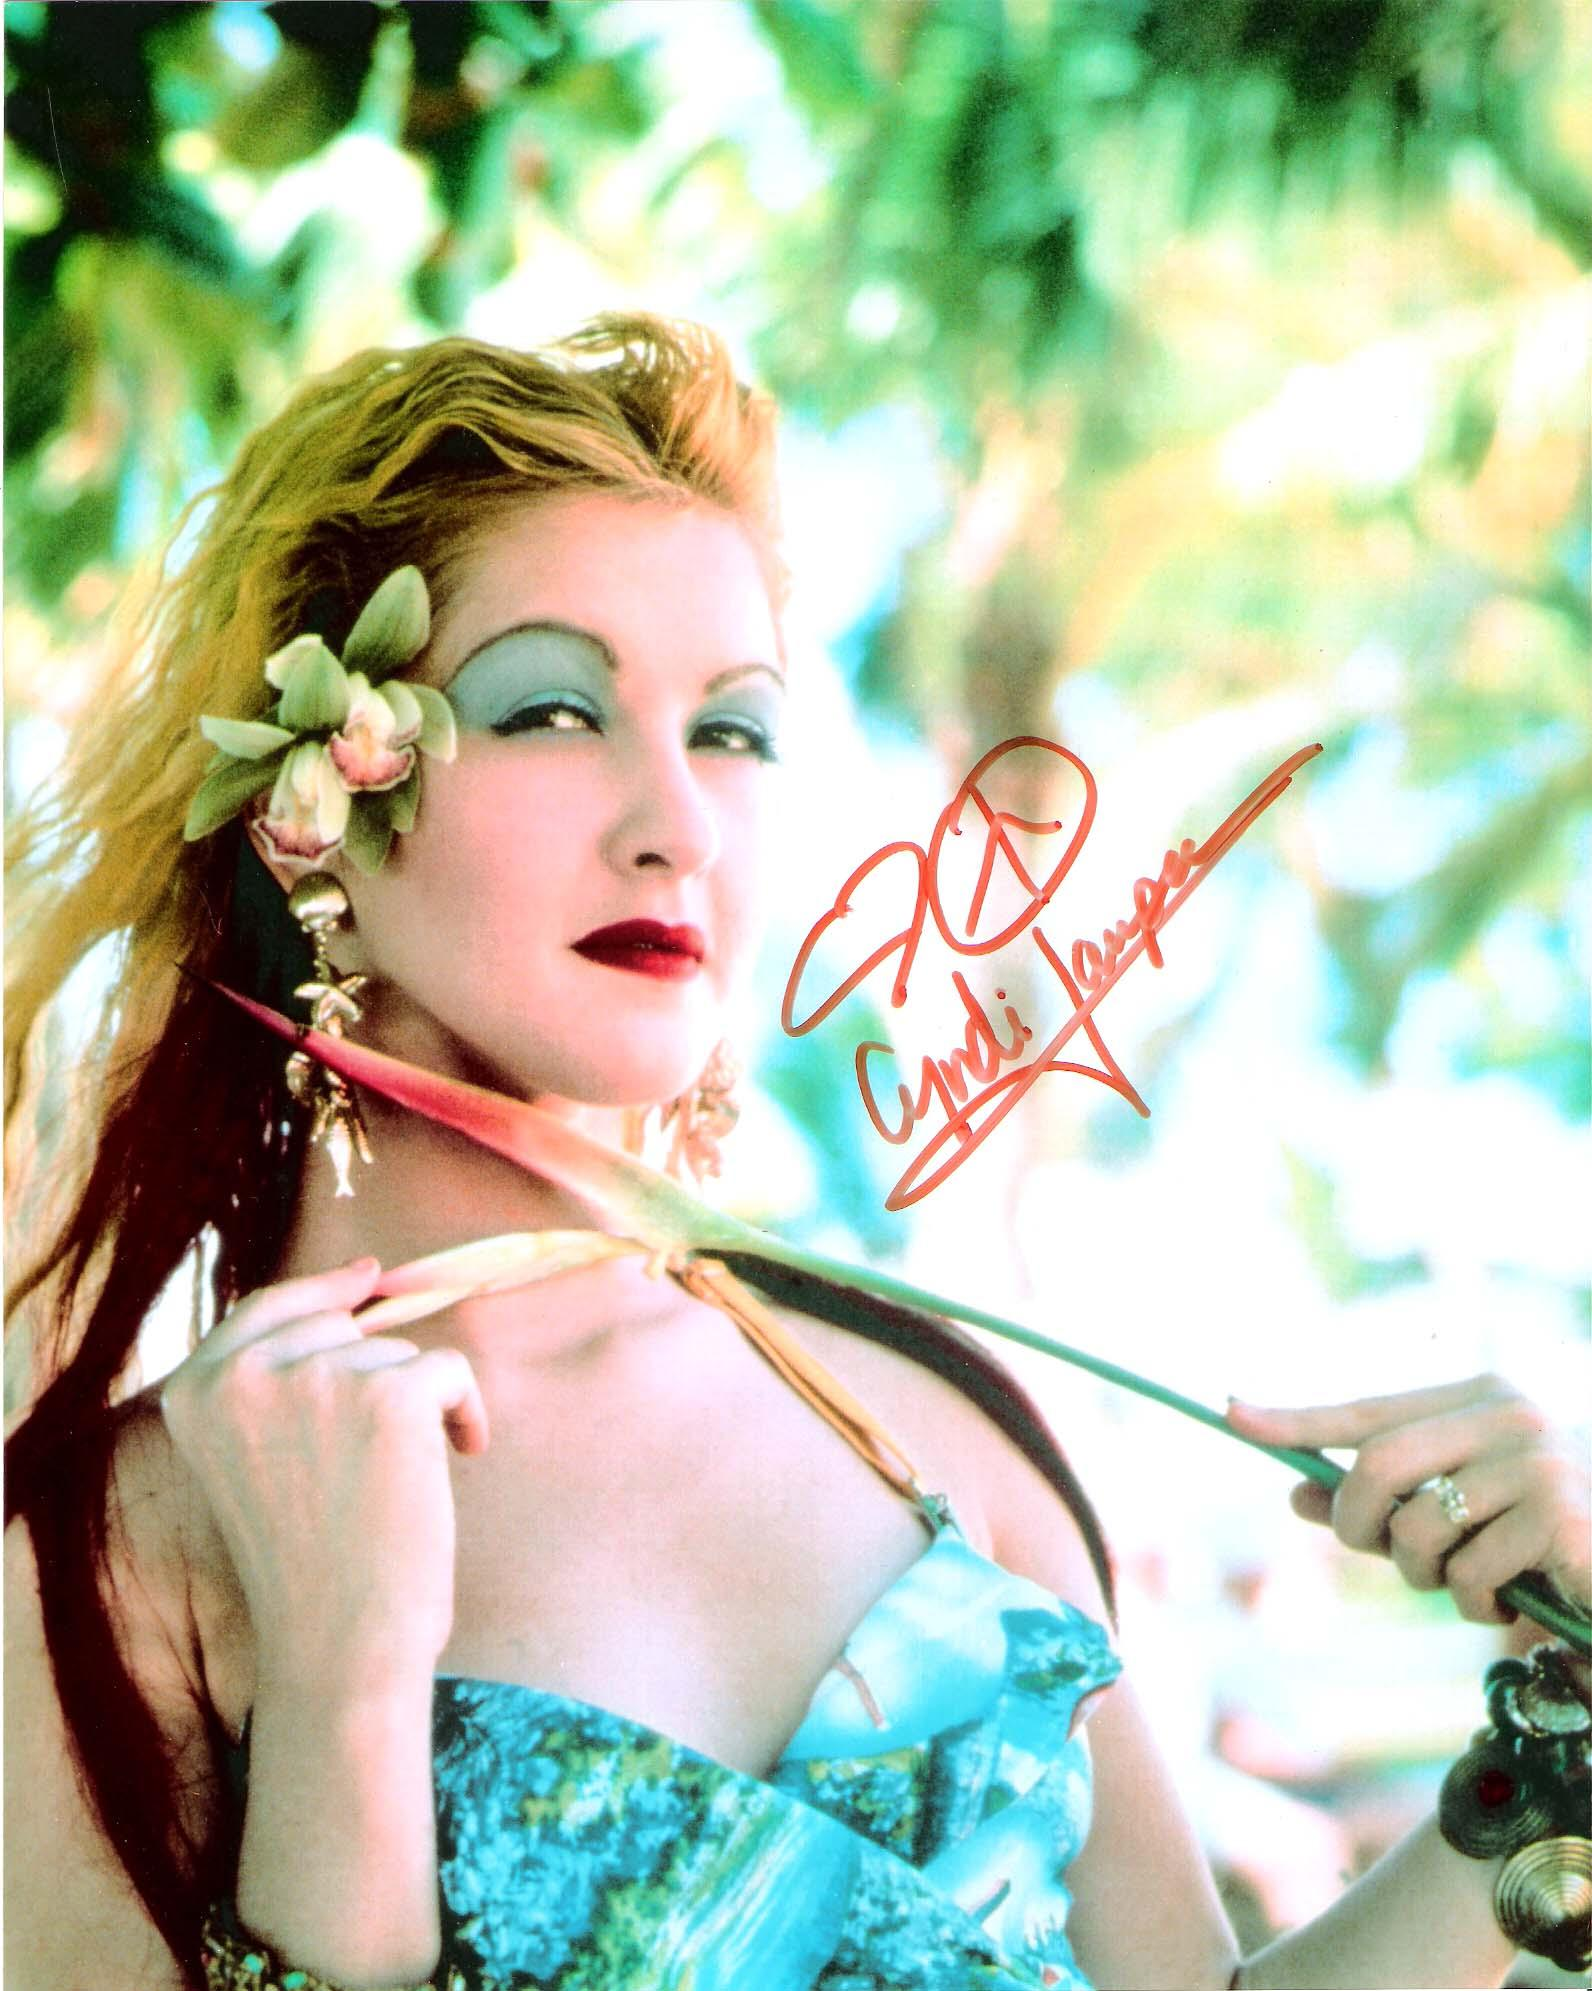 """CINDY LAUPER (SINGER/SONGWRITER) Hits Include """"TIME AFTER TIME"""" and """"TRUE COLORS"""" Signed 8x10 Color Photo"""